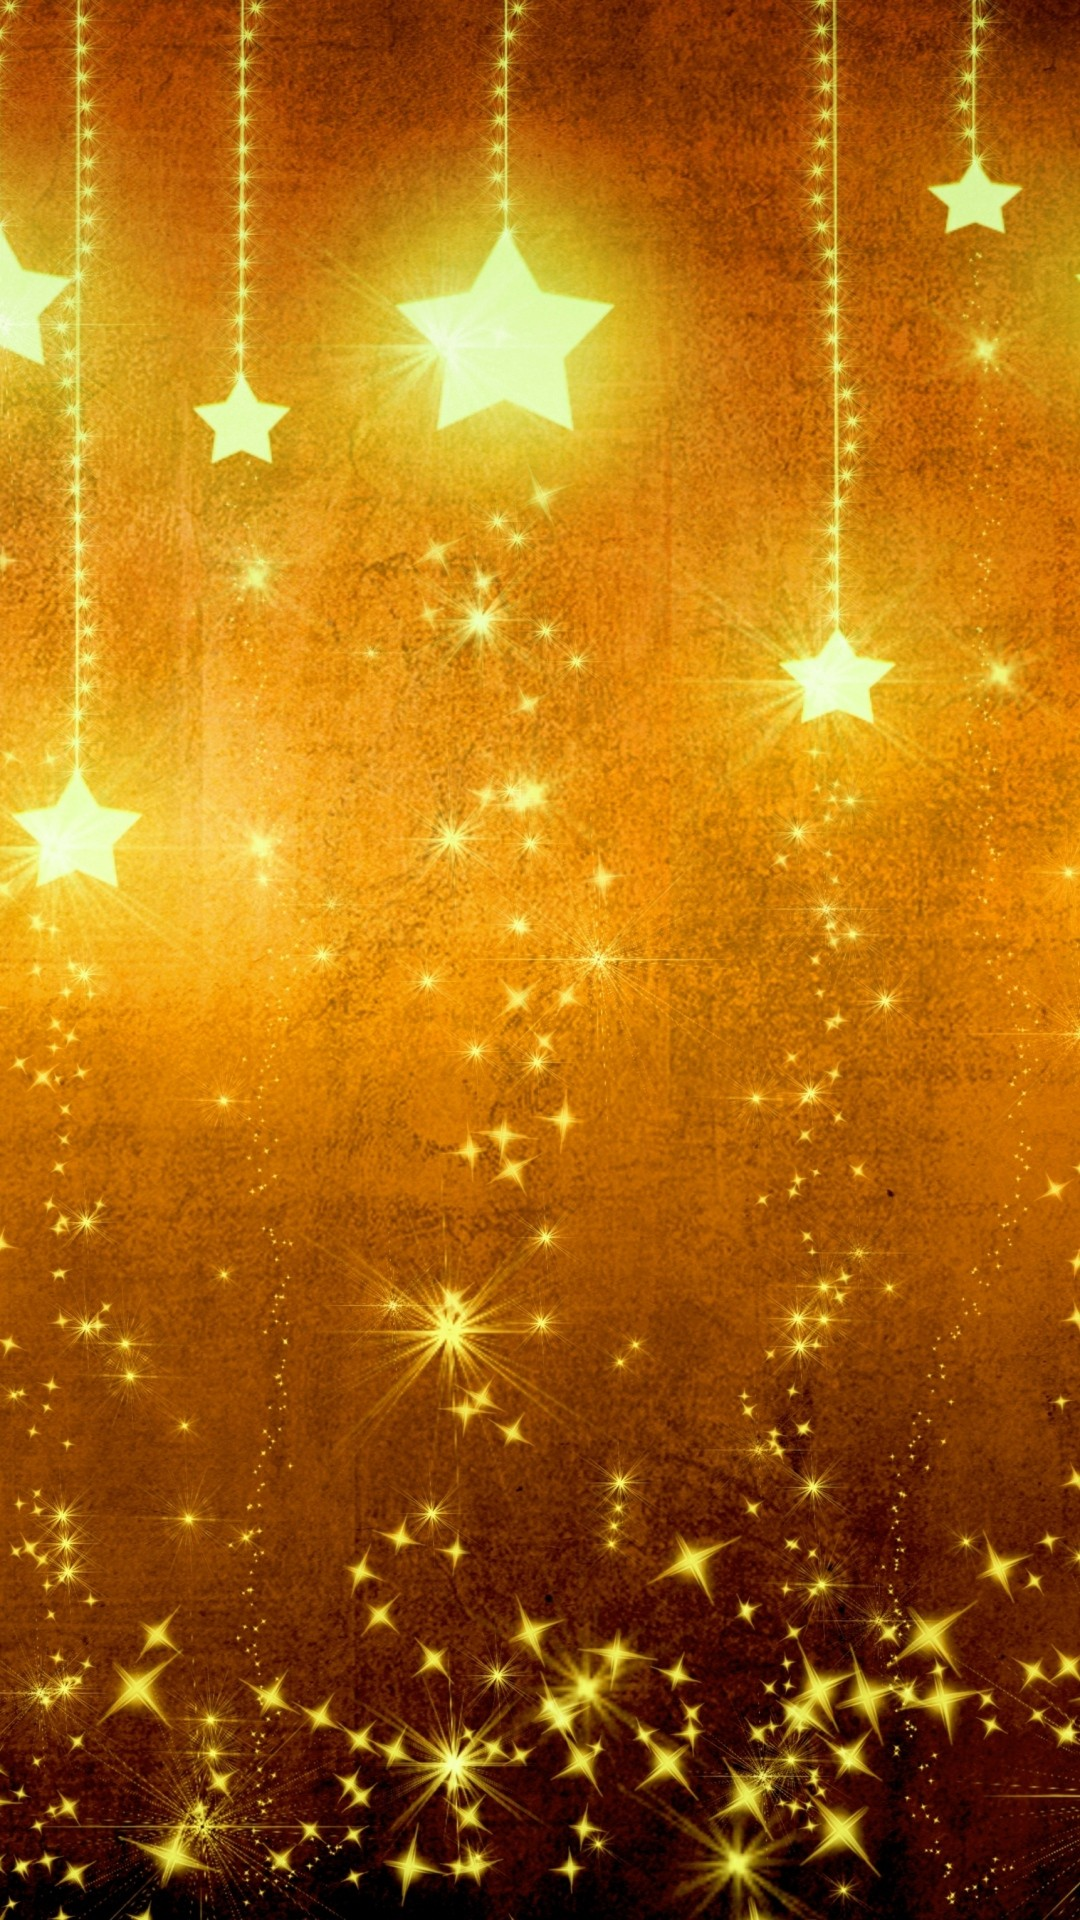 Lighting Background 183 ① Download Free Awesome Hd Wallpapers